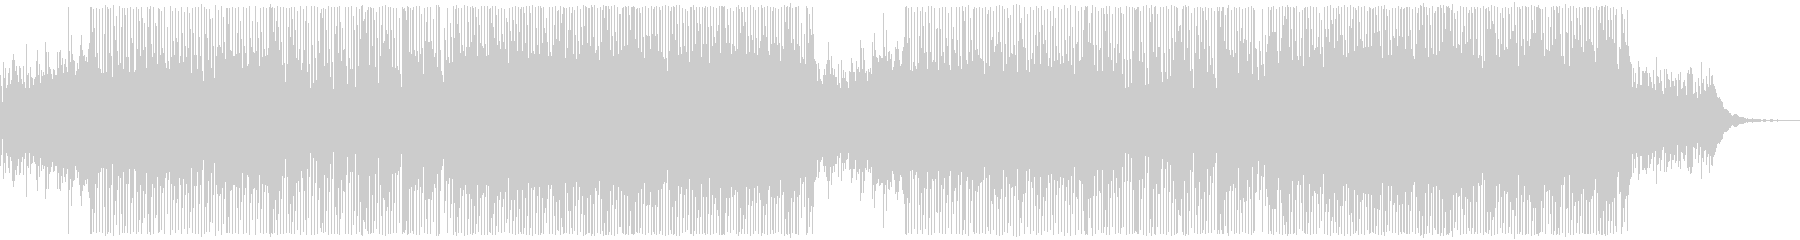 Awkward acoustic with transparency's unreproduced waveform